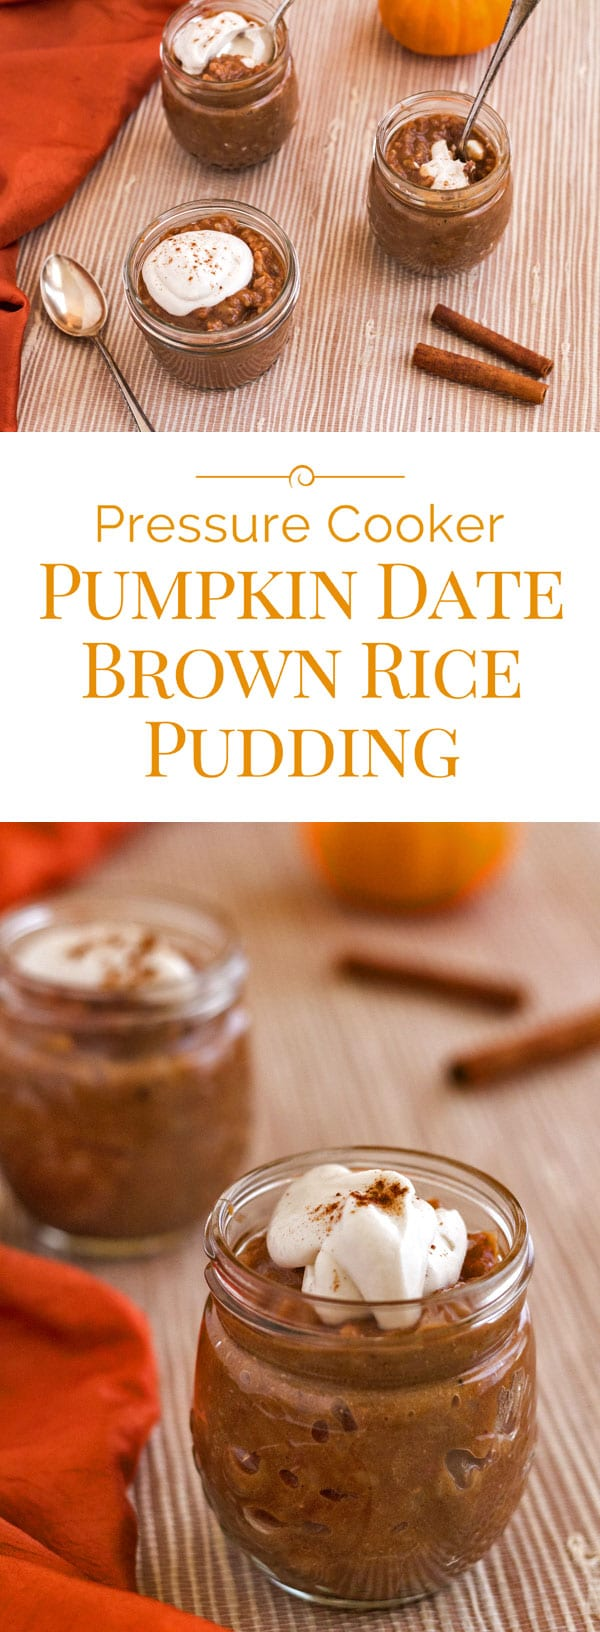 Naturally sweetened with dates and maple syrup, starring whole grain brown rice and pumpkin pie spices—this pressure cooker pumpkin date brown rice pudding is comfort food that you can feel good about.